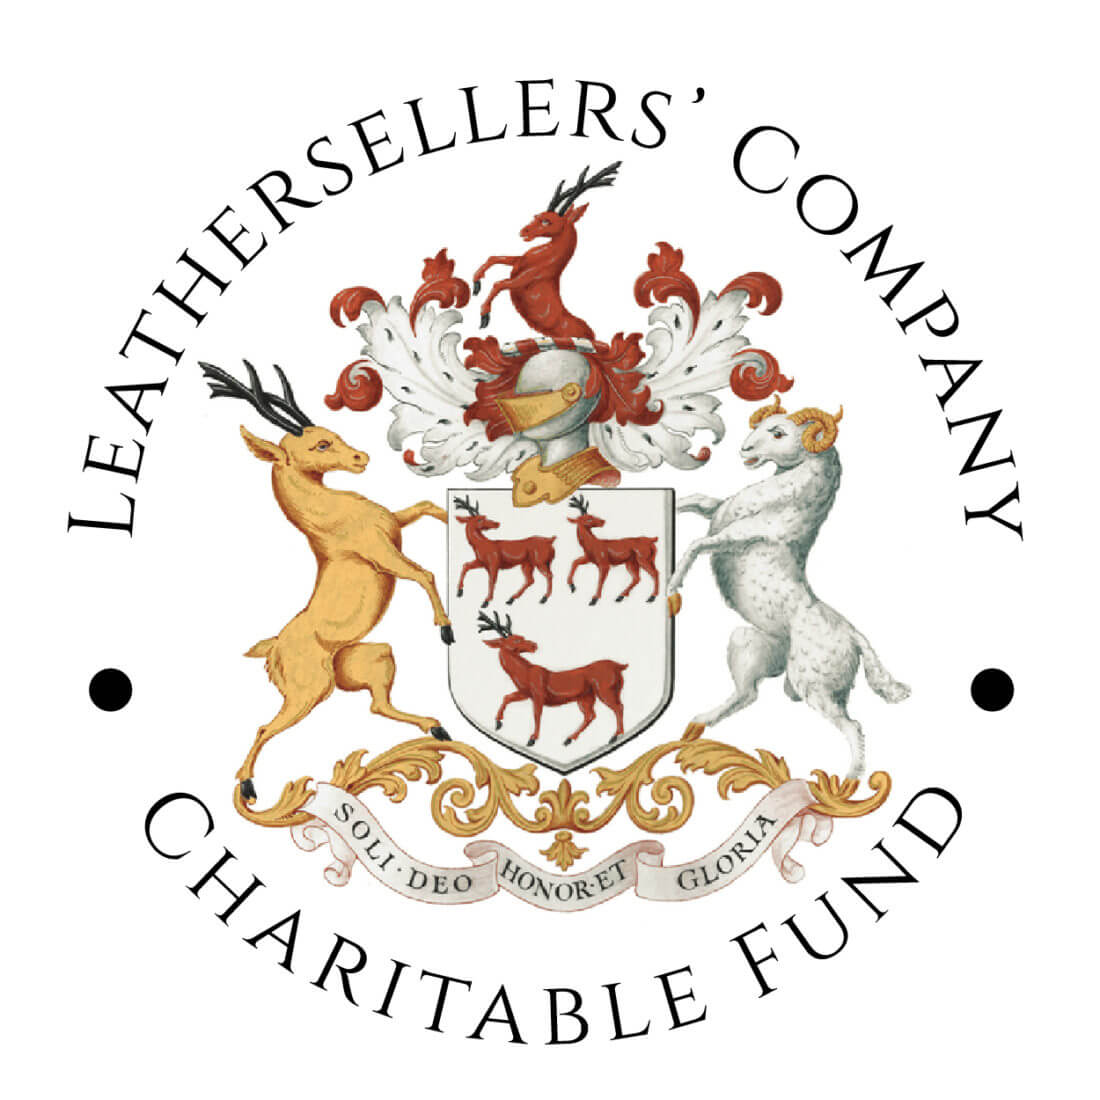 leathersellers logo